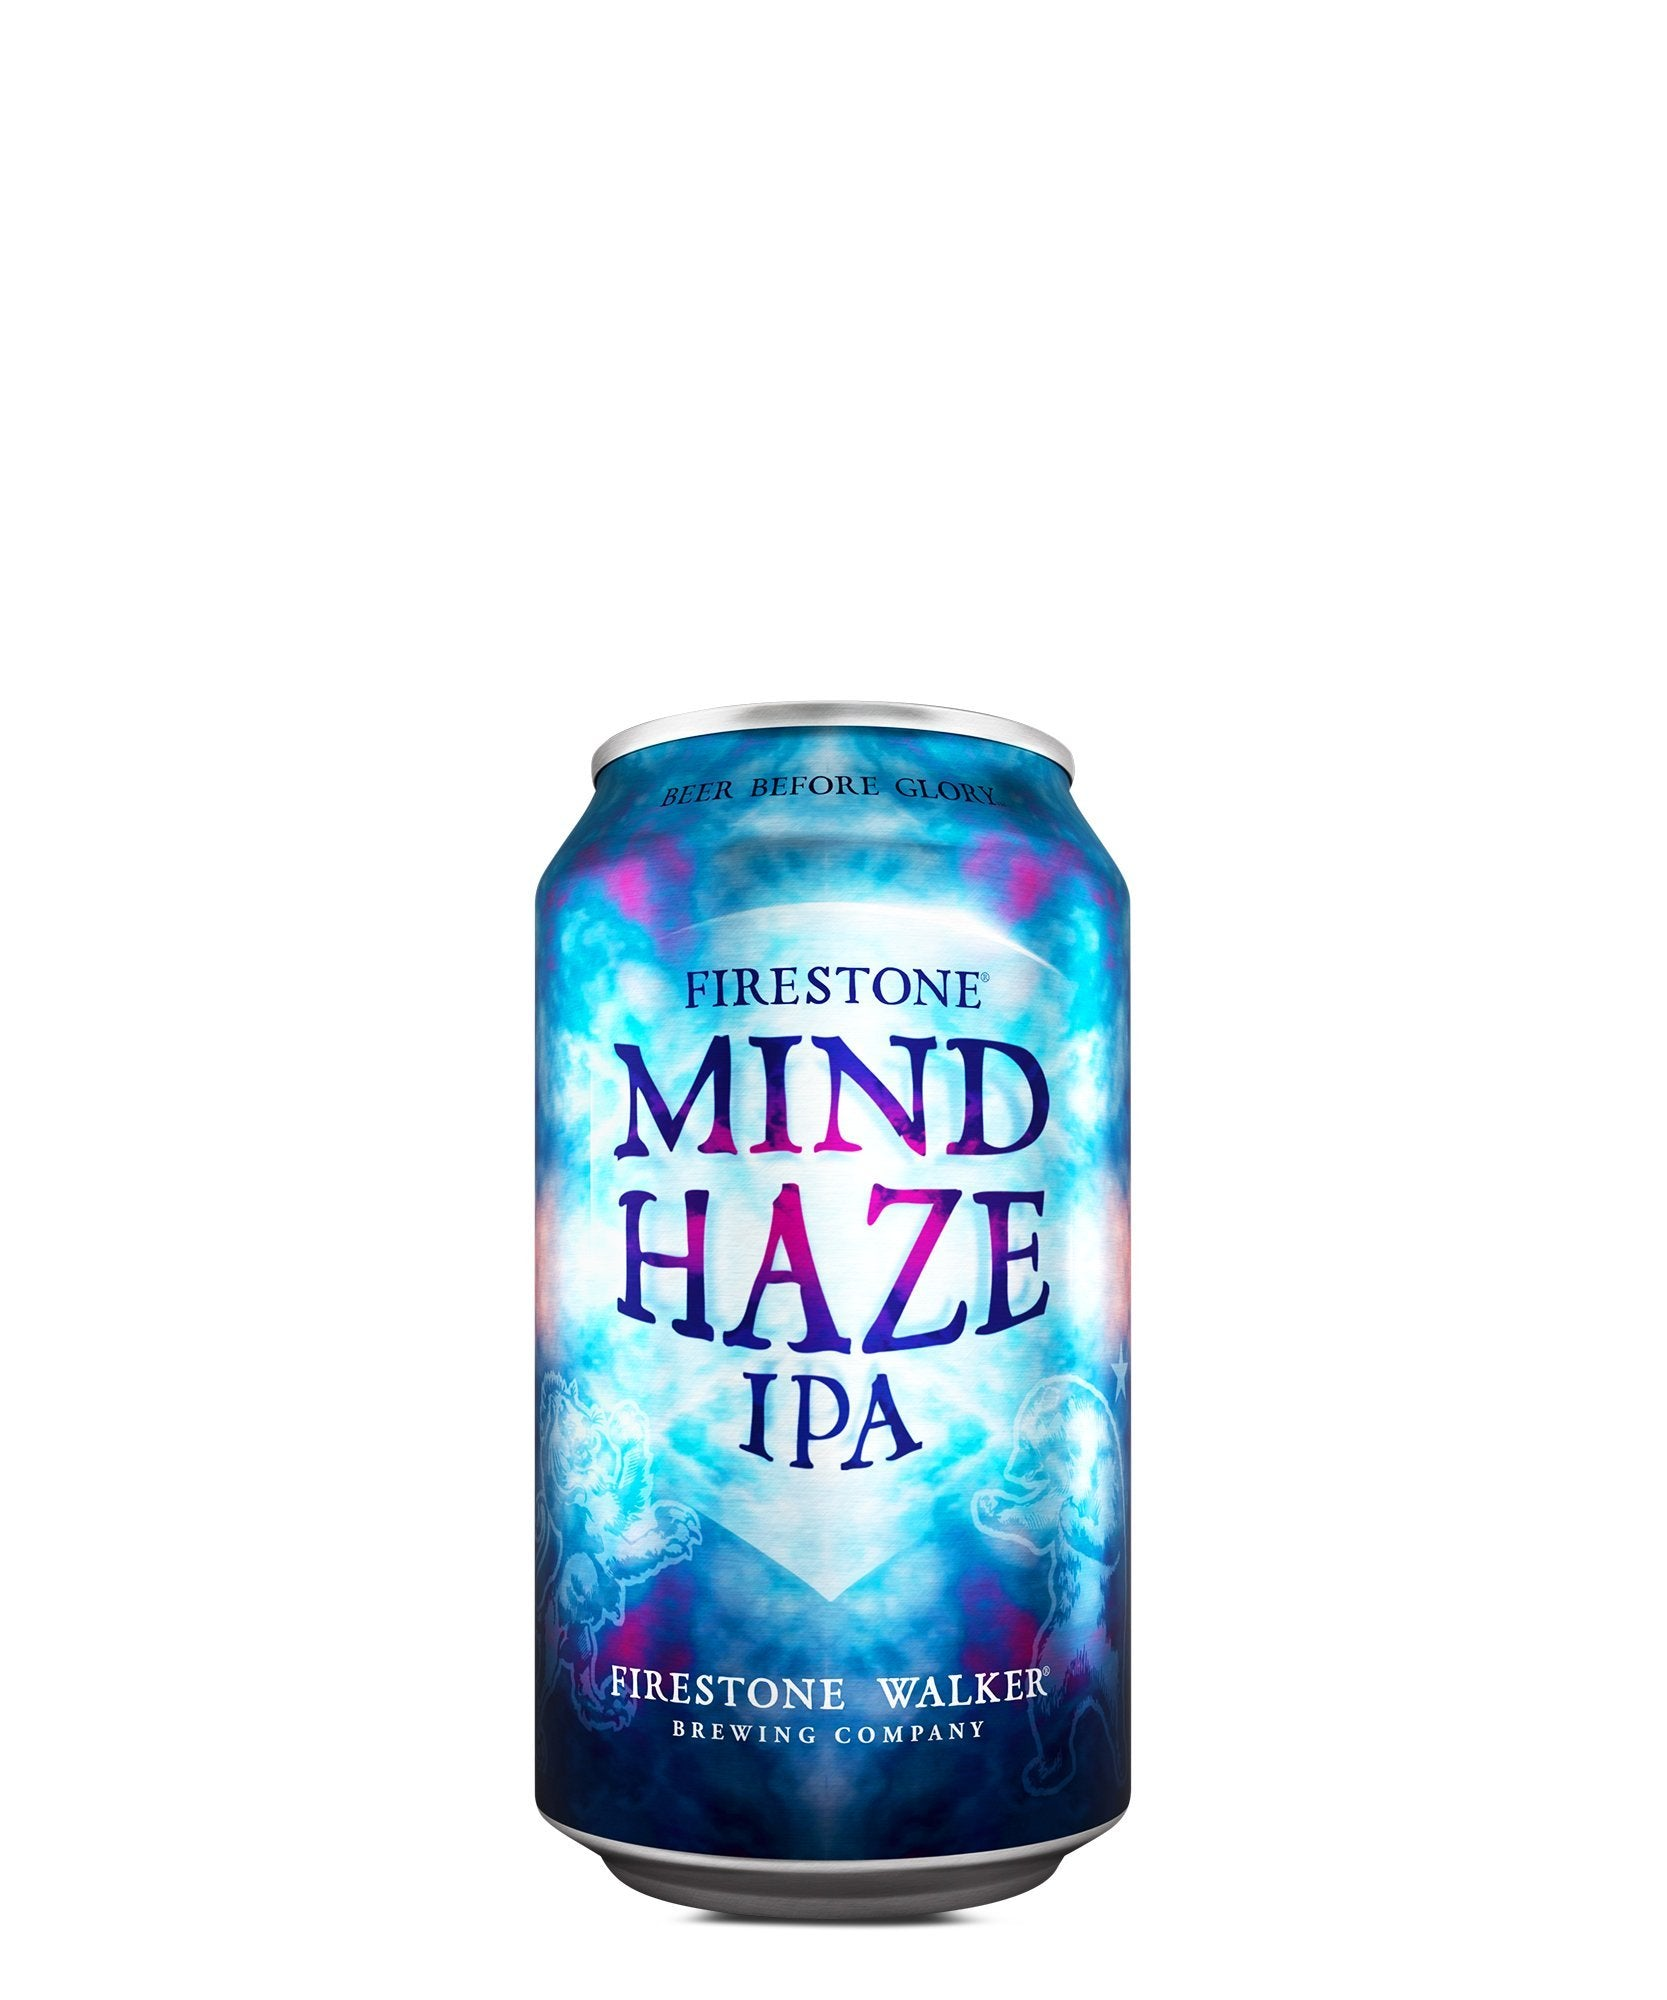 Mind Haze - Firestone Walker Brewing Company Delivered By TapRm